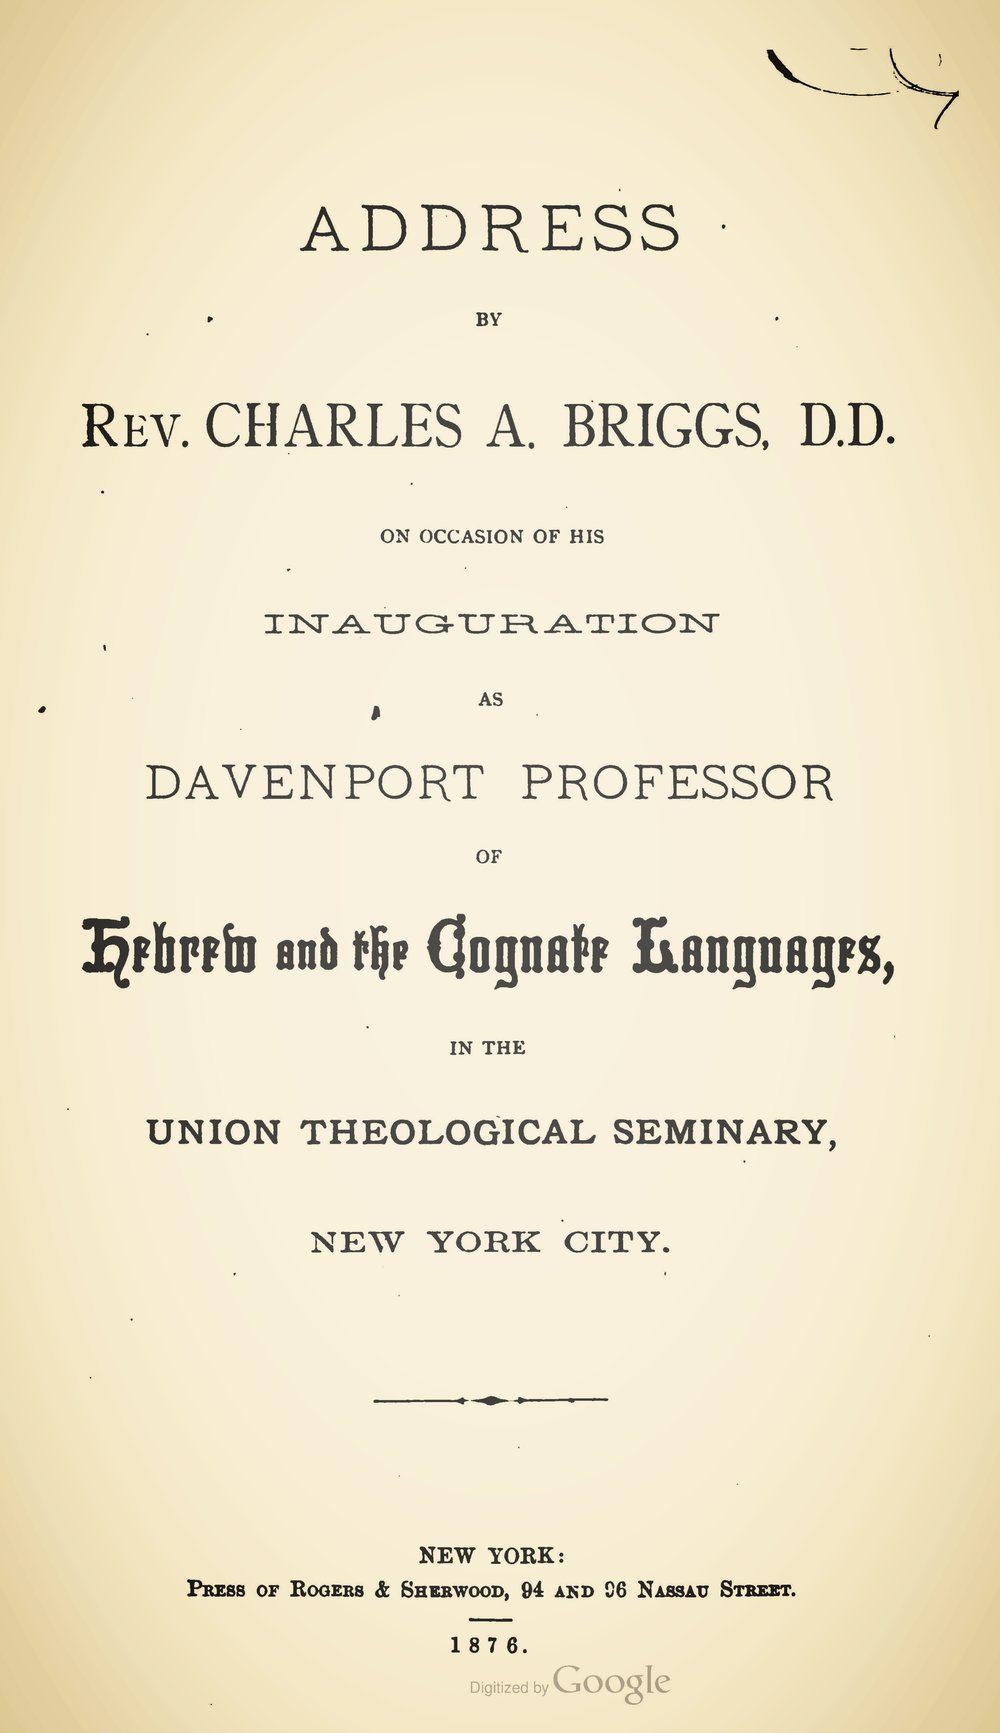 Briggs, Charles Augustus, Address by Rev Charles A Briggs DD on Occasion of His Inauguration as Davenport Professor of Hebrew and the Cognate Languages Title Page.jpg